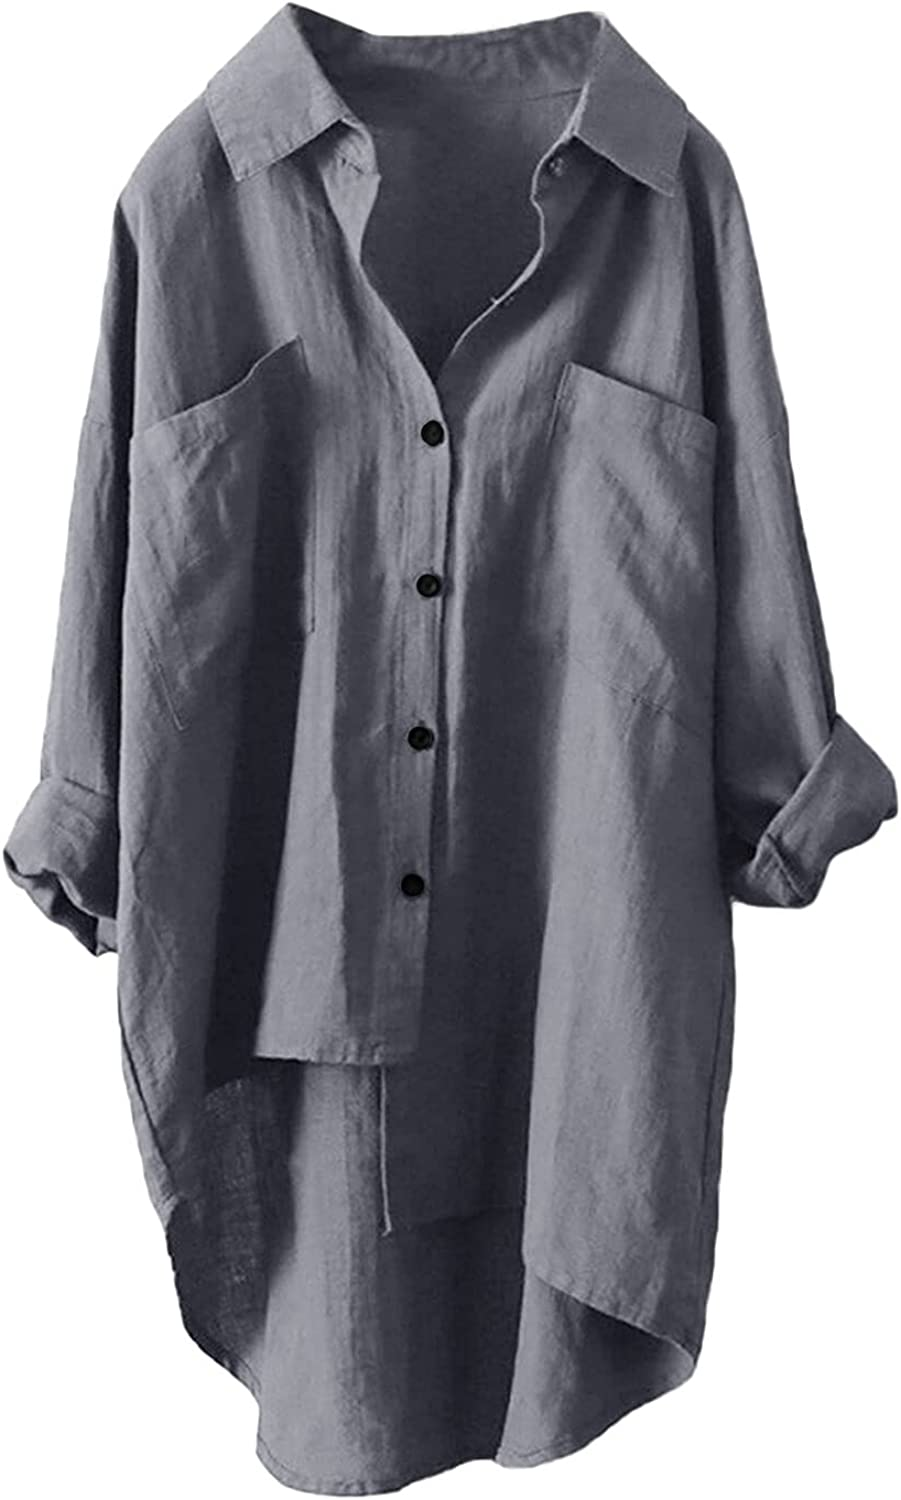 Leirke Womens Casual Shirts Plus Size Baggy High Low Blouse Mid-Long Shirts Oversized V Neck Work Plain Tops with Pockets